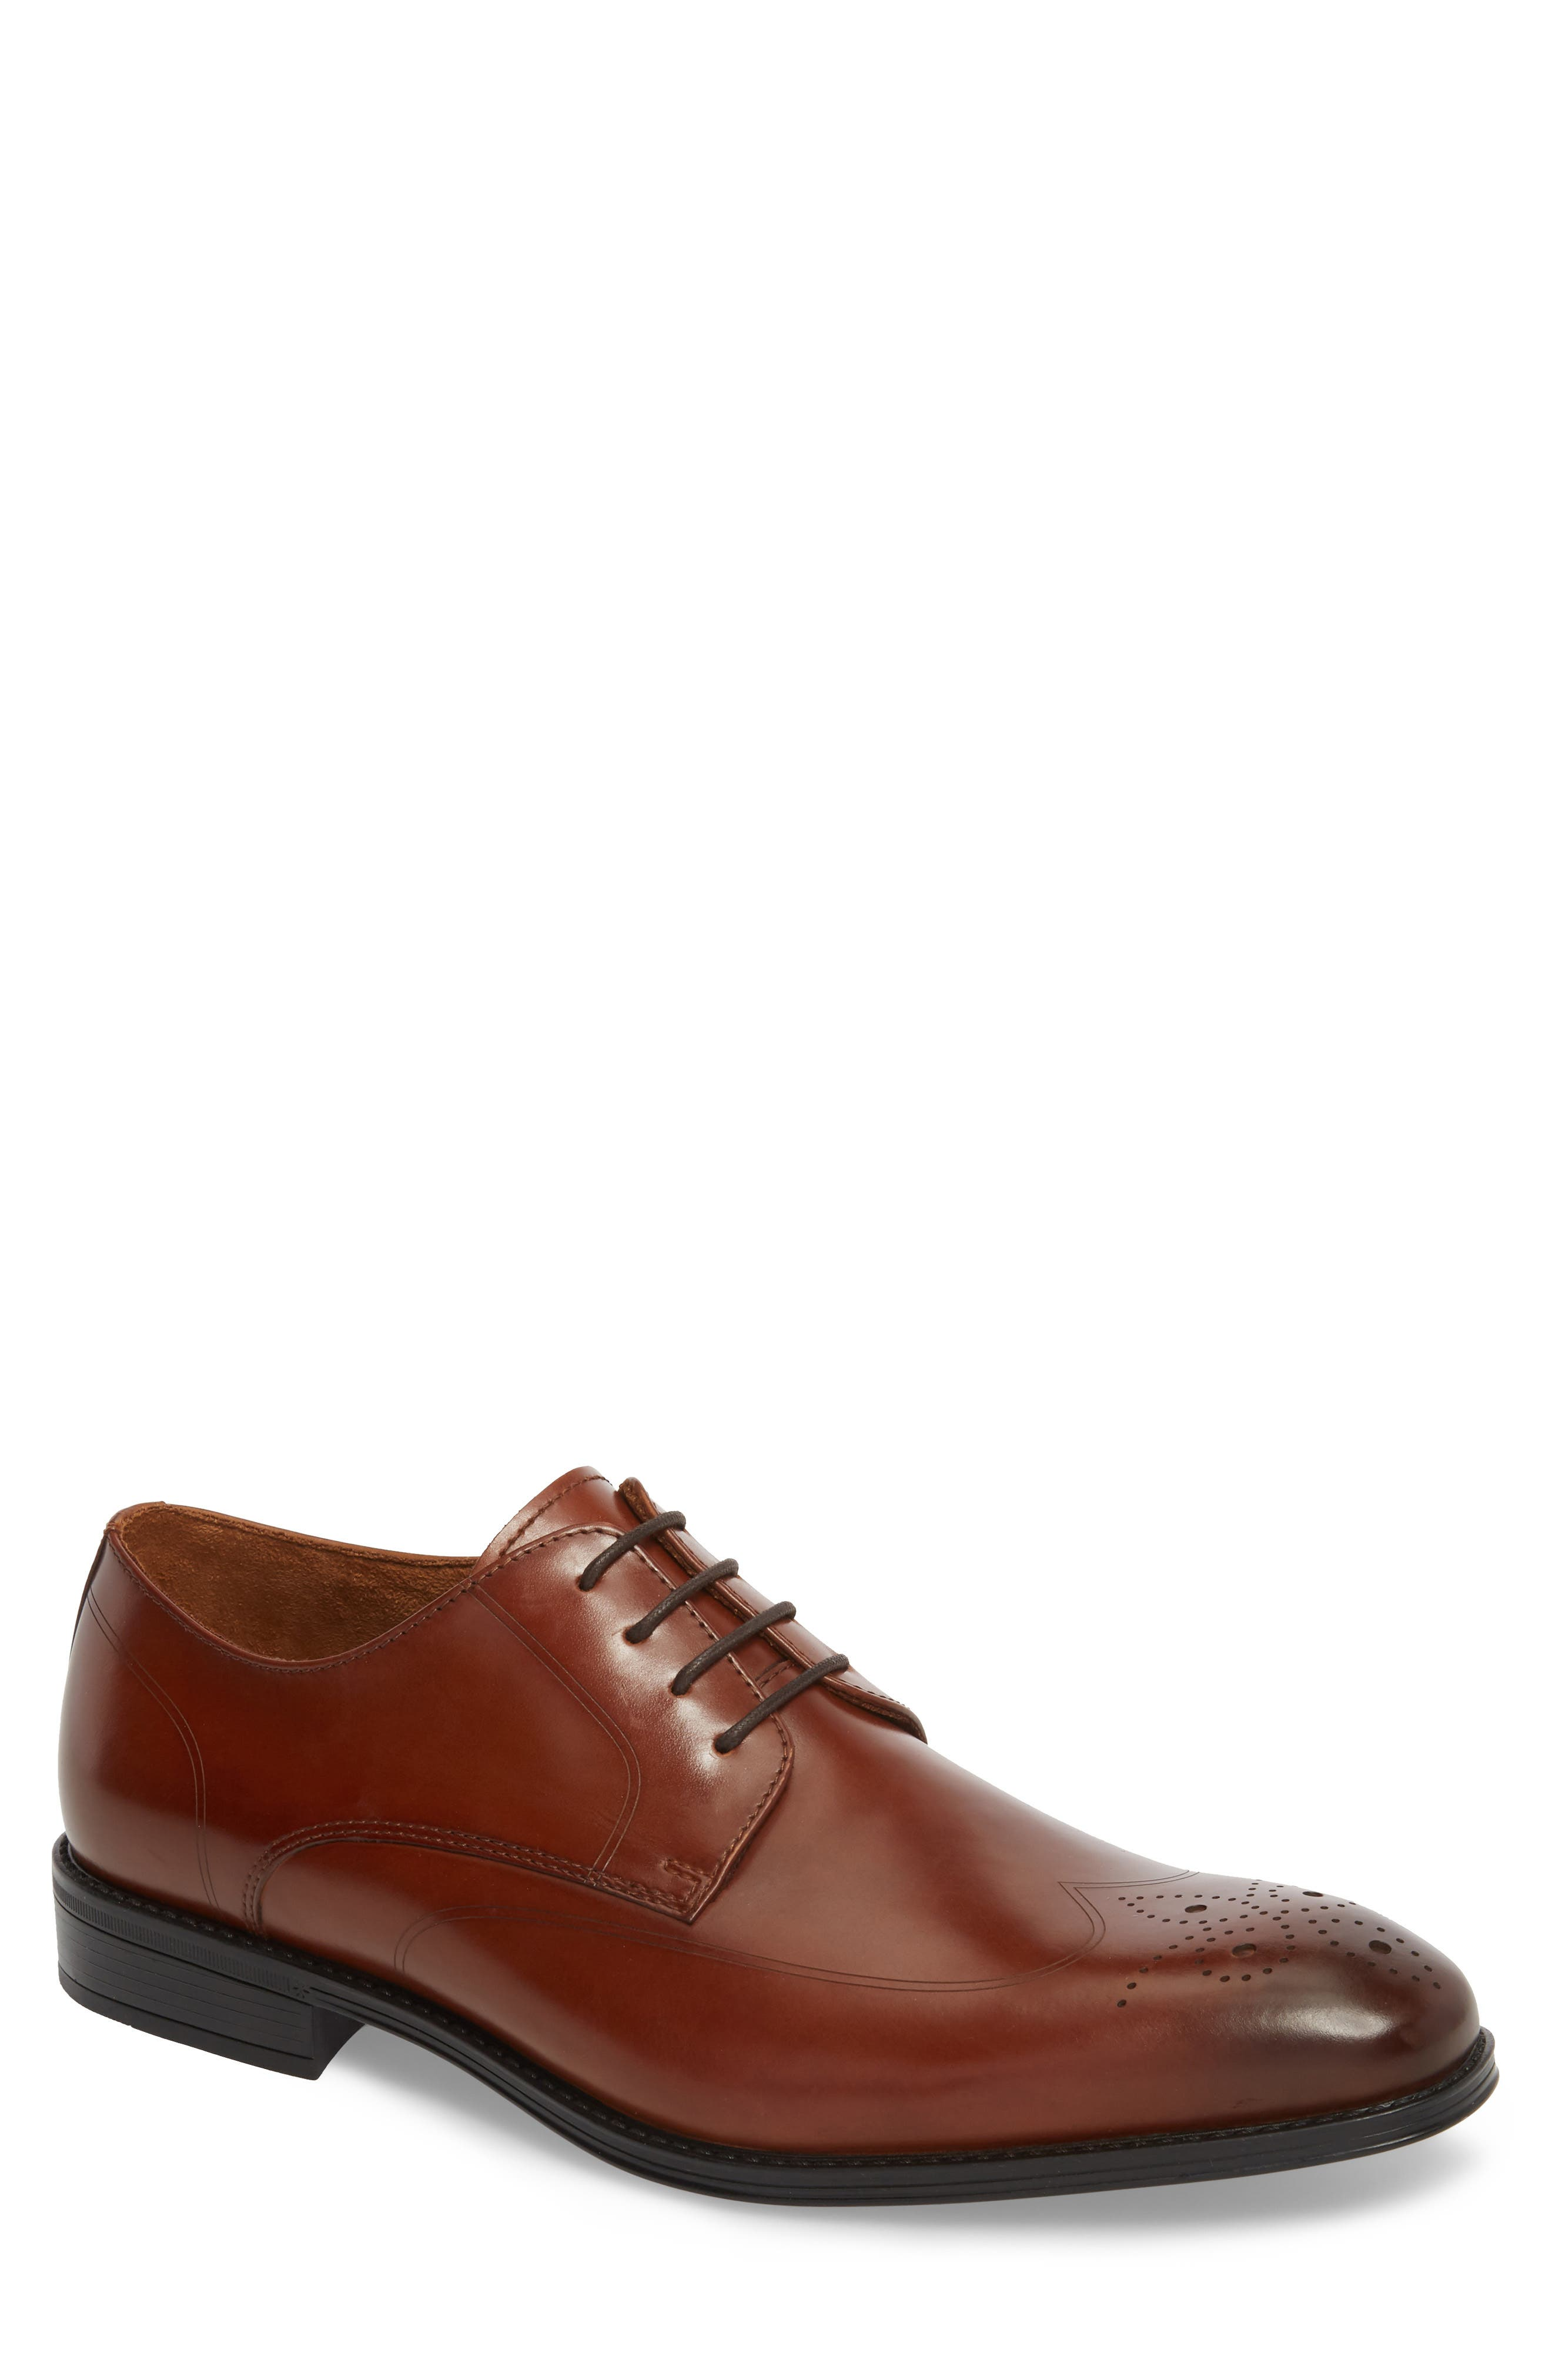 Kenneth Cole New York Abbott Plain Toe Lace Up Oxford (Men)